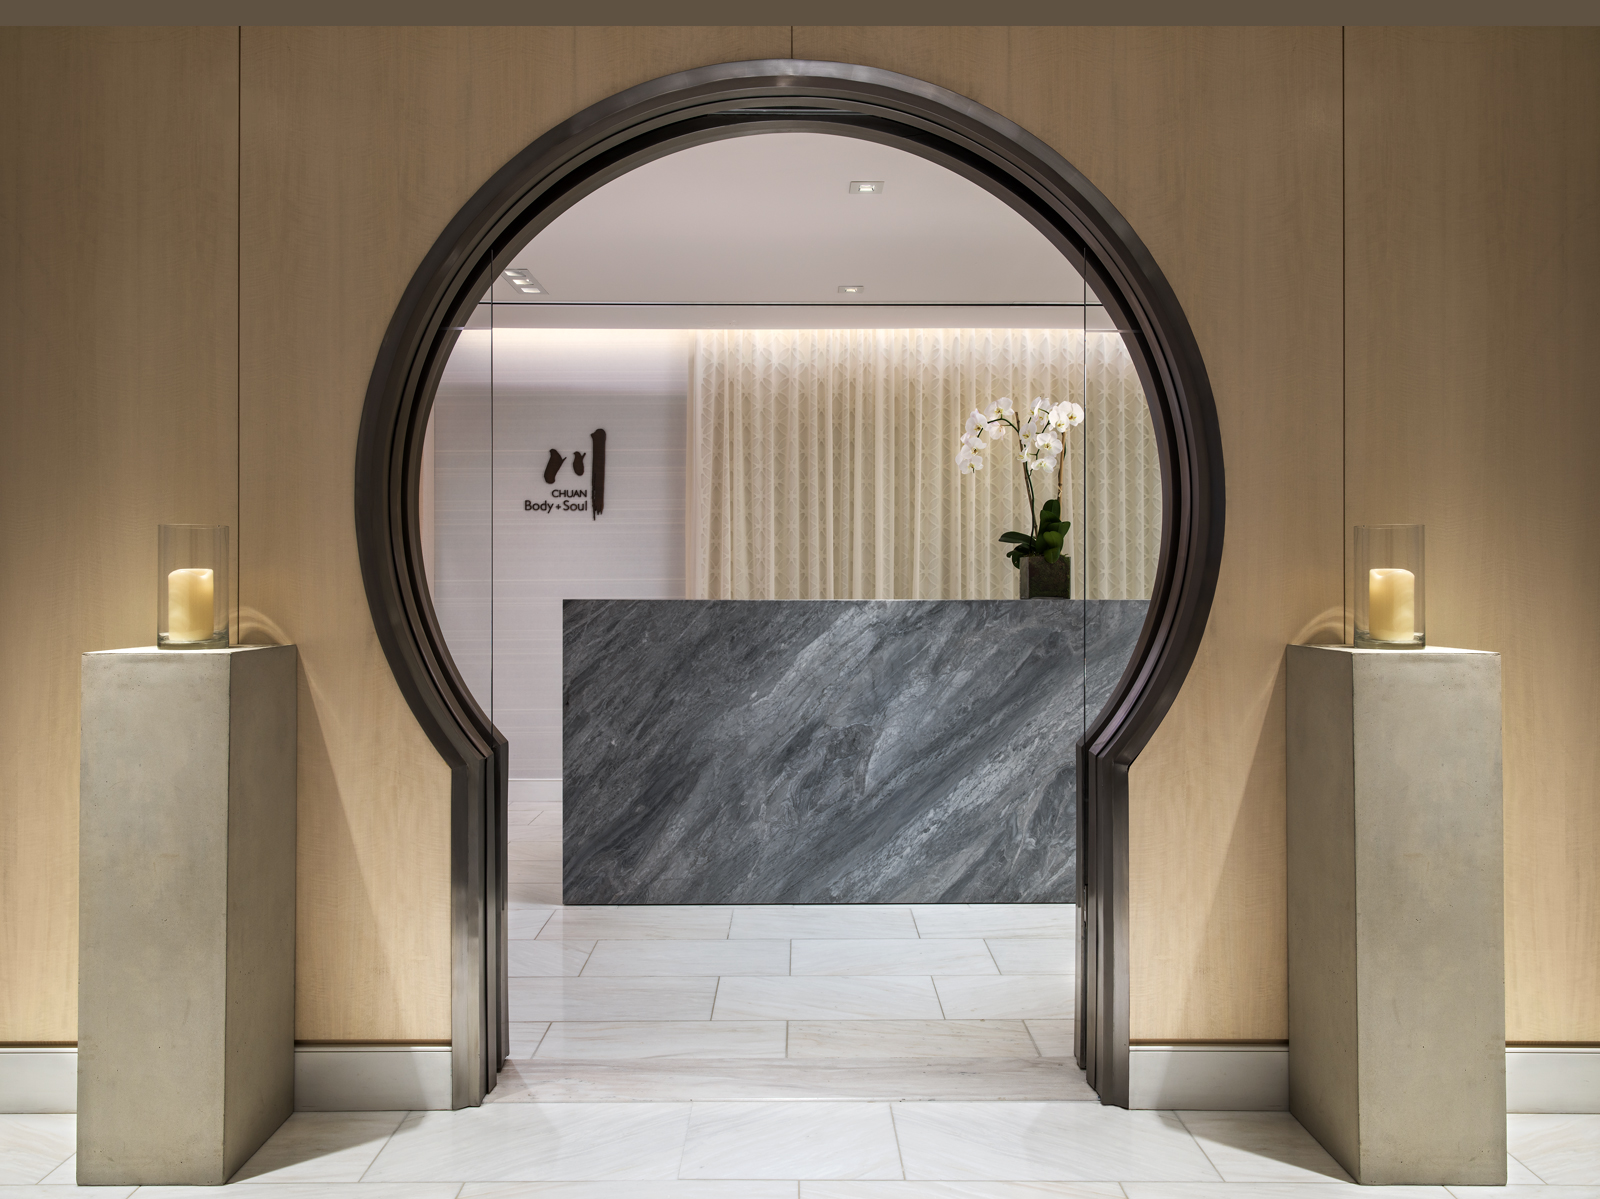 Chuan Body + Soul spa entrance at Langham Place, New York, Fifth Avenue.